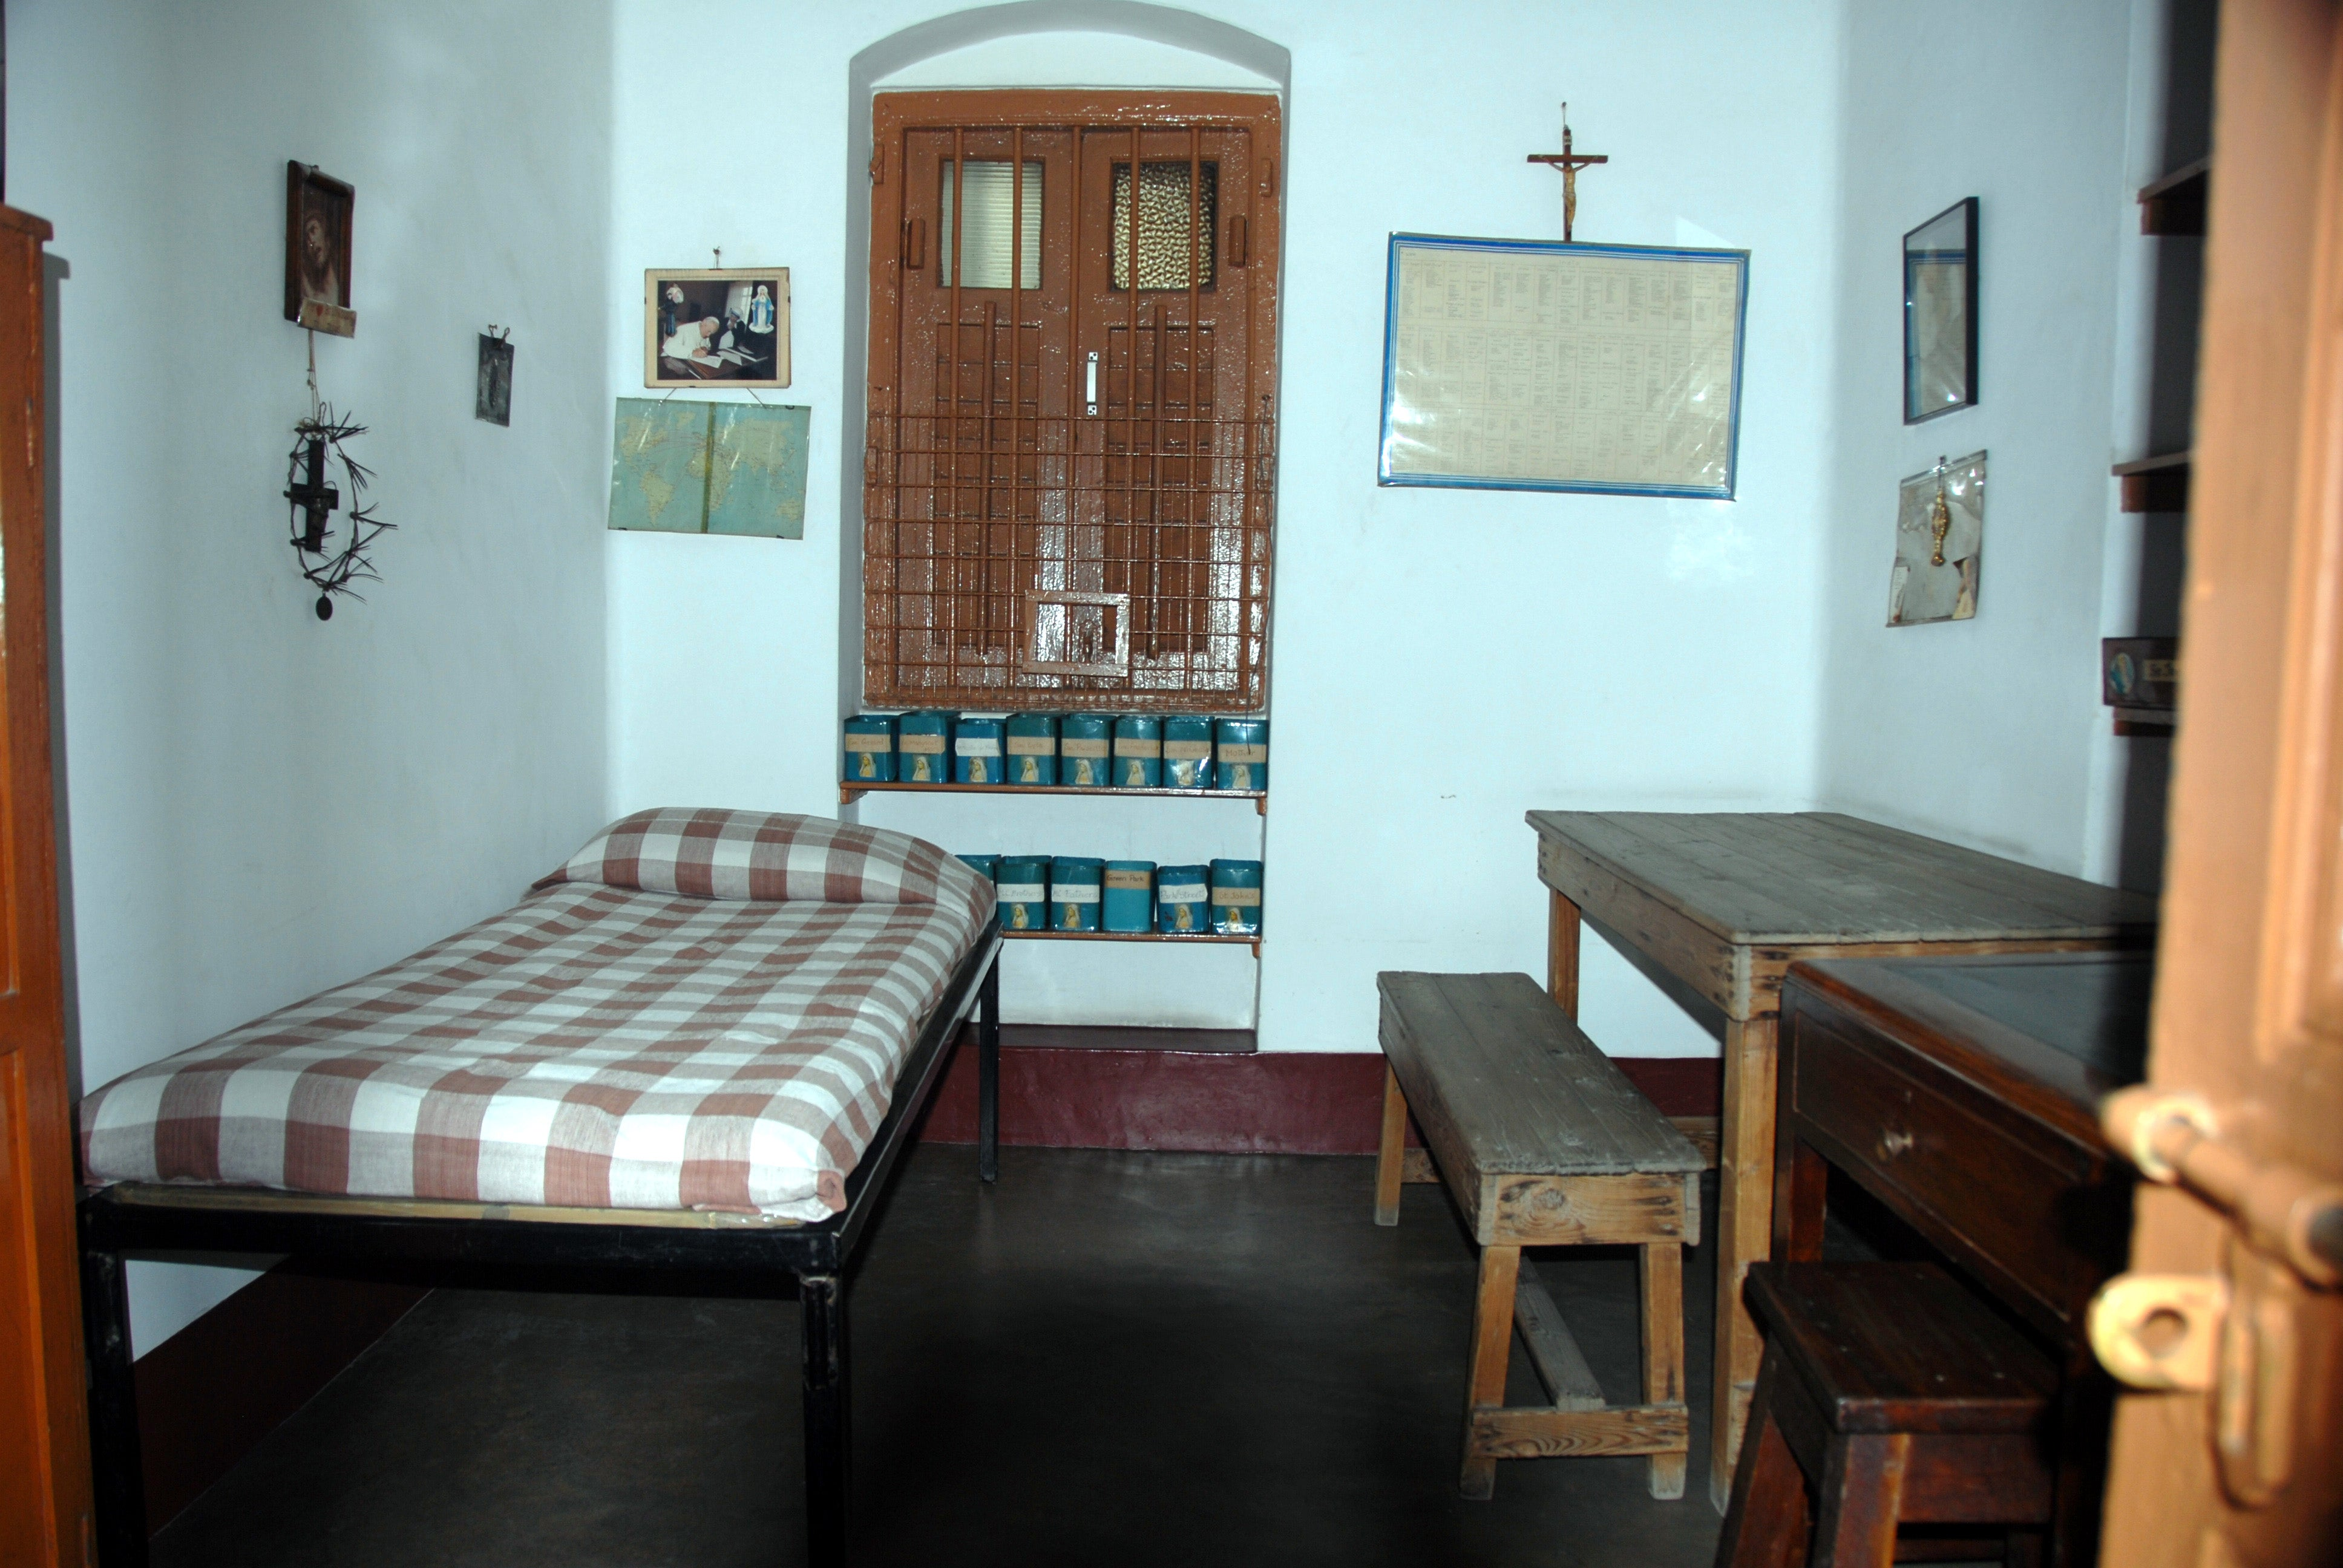 Casa Rural en Mother House de Madre Teresa